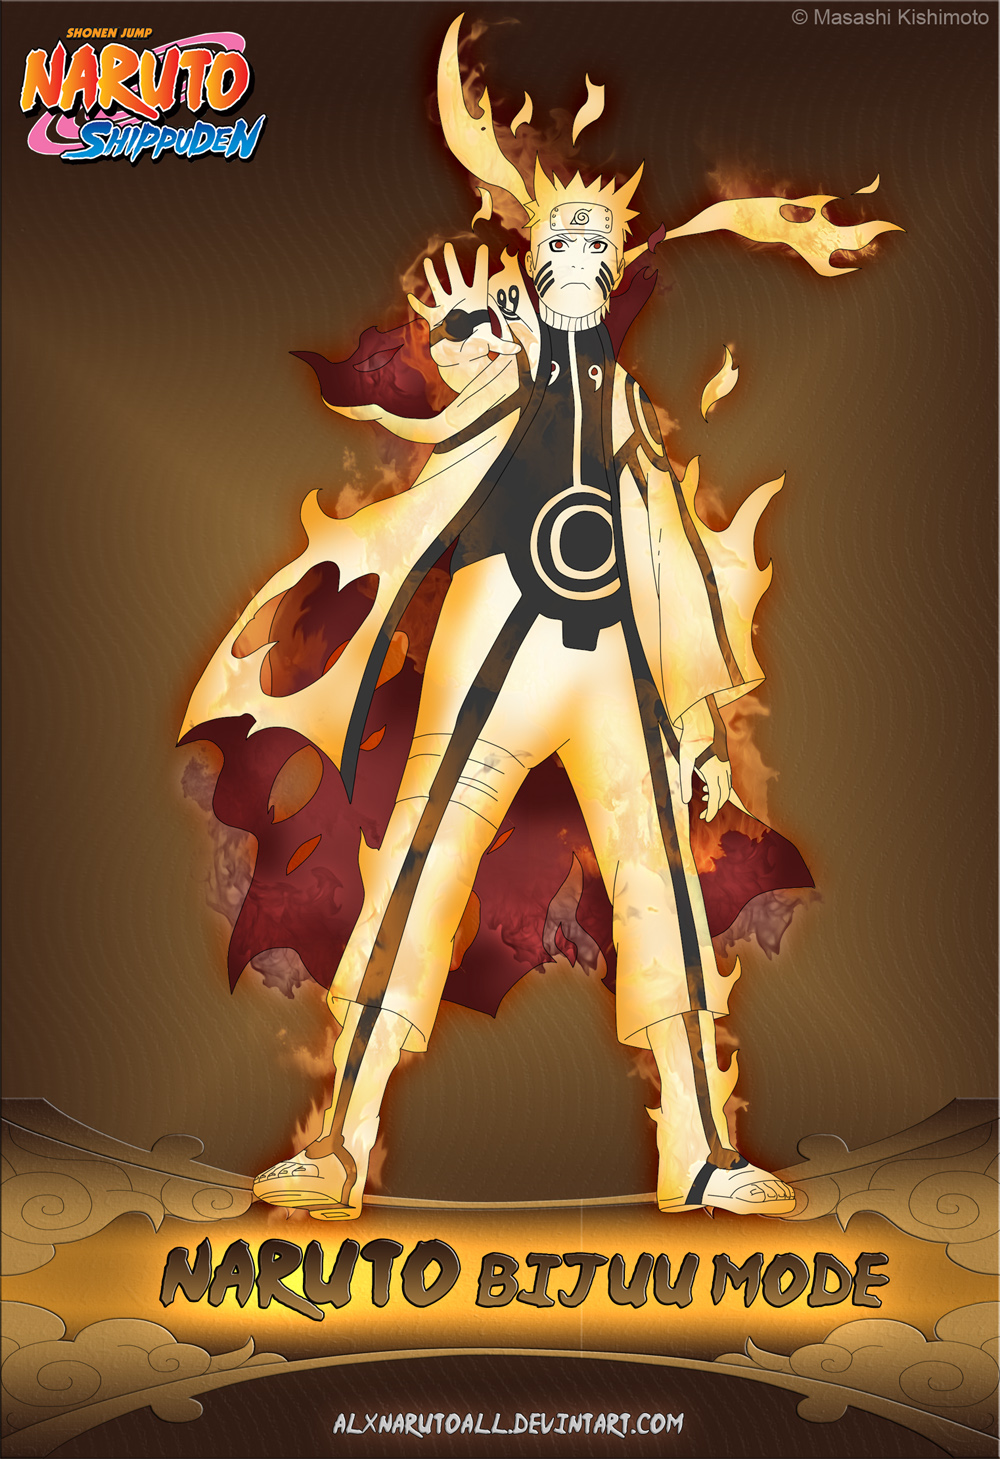 In what form/state is Naruto more badass in?